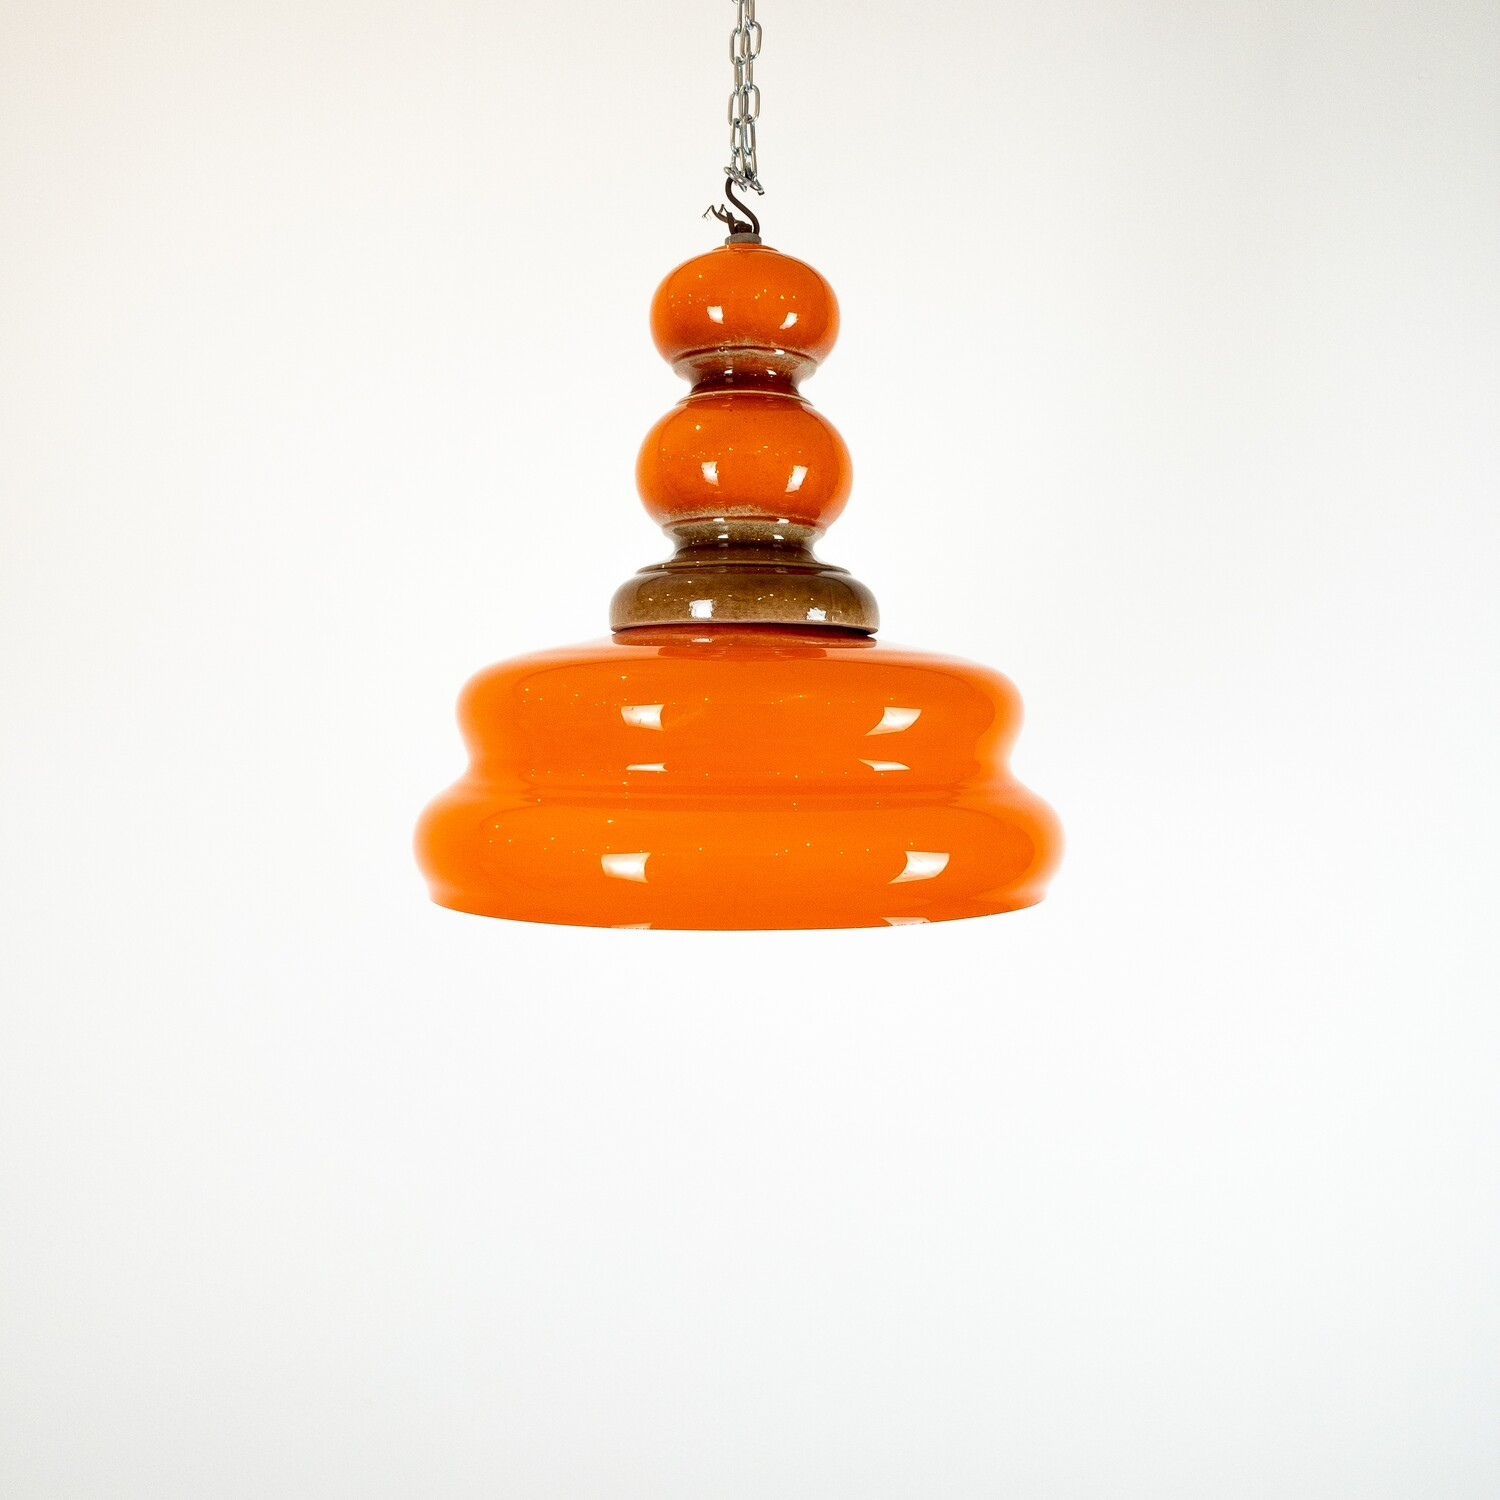 Space age Orange ceramic pendant lamp